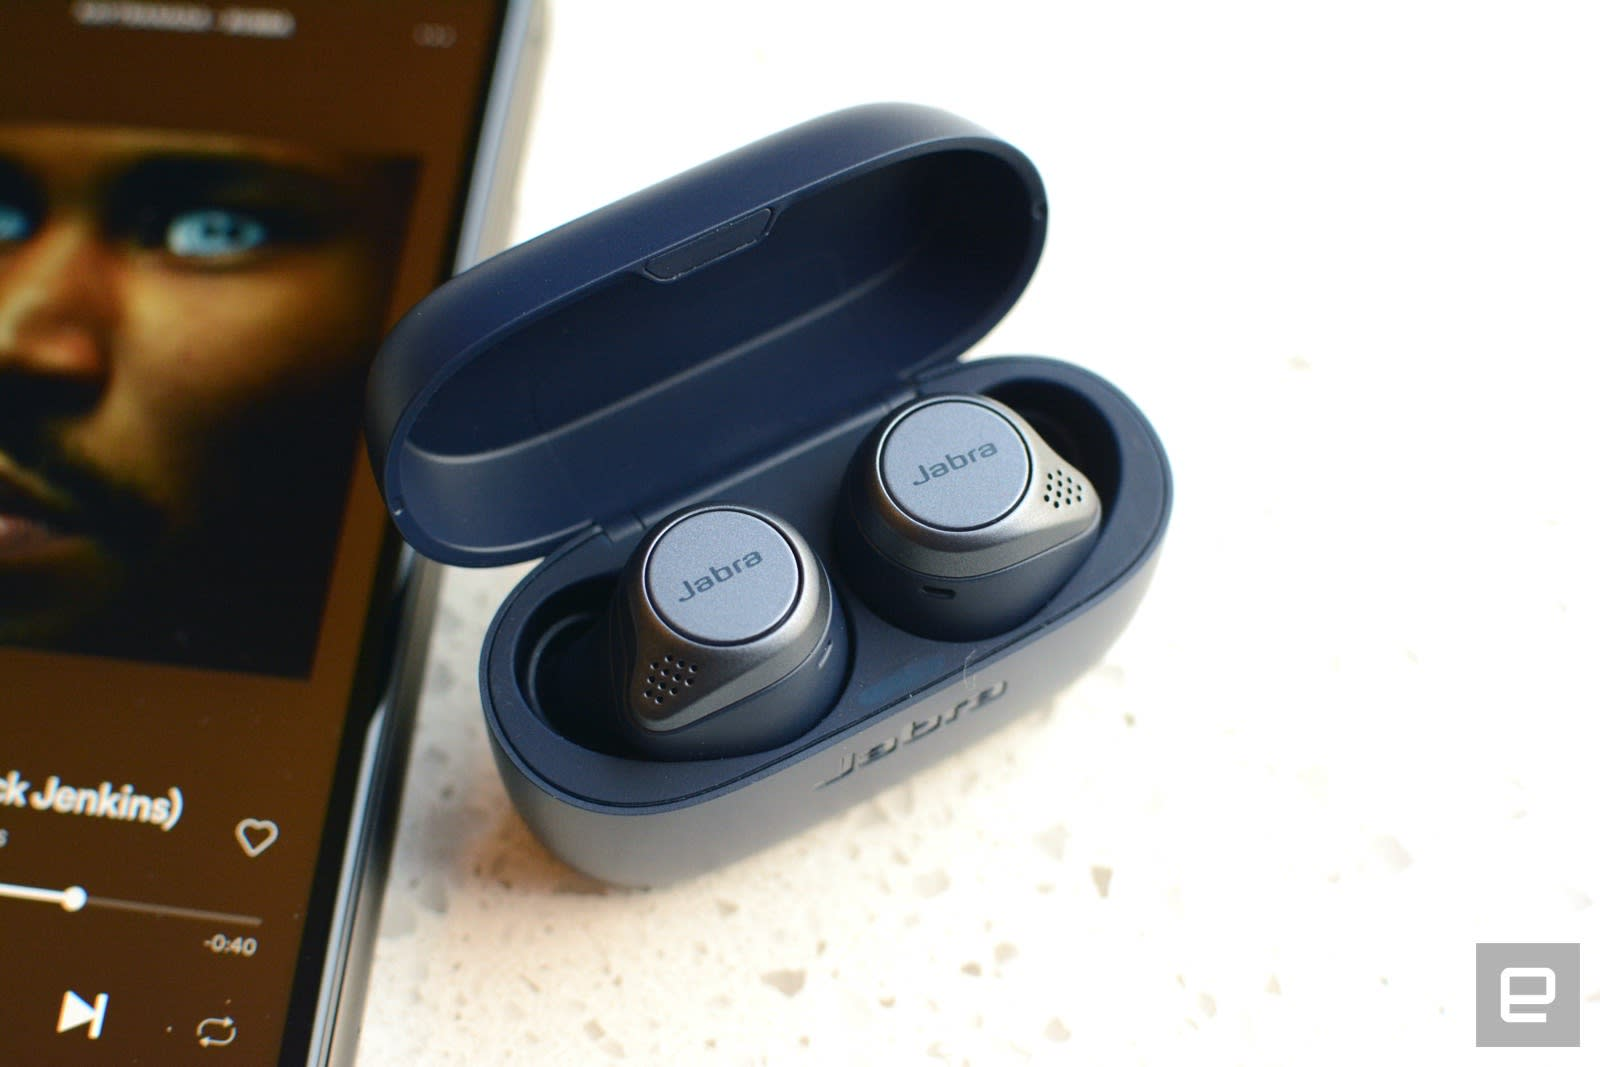 Jabra Debuts A Sporty Version Of Its Elite 75t True Wireless Earbuds